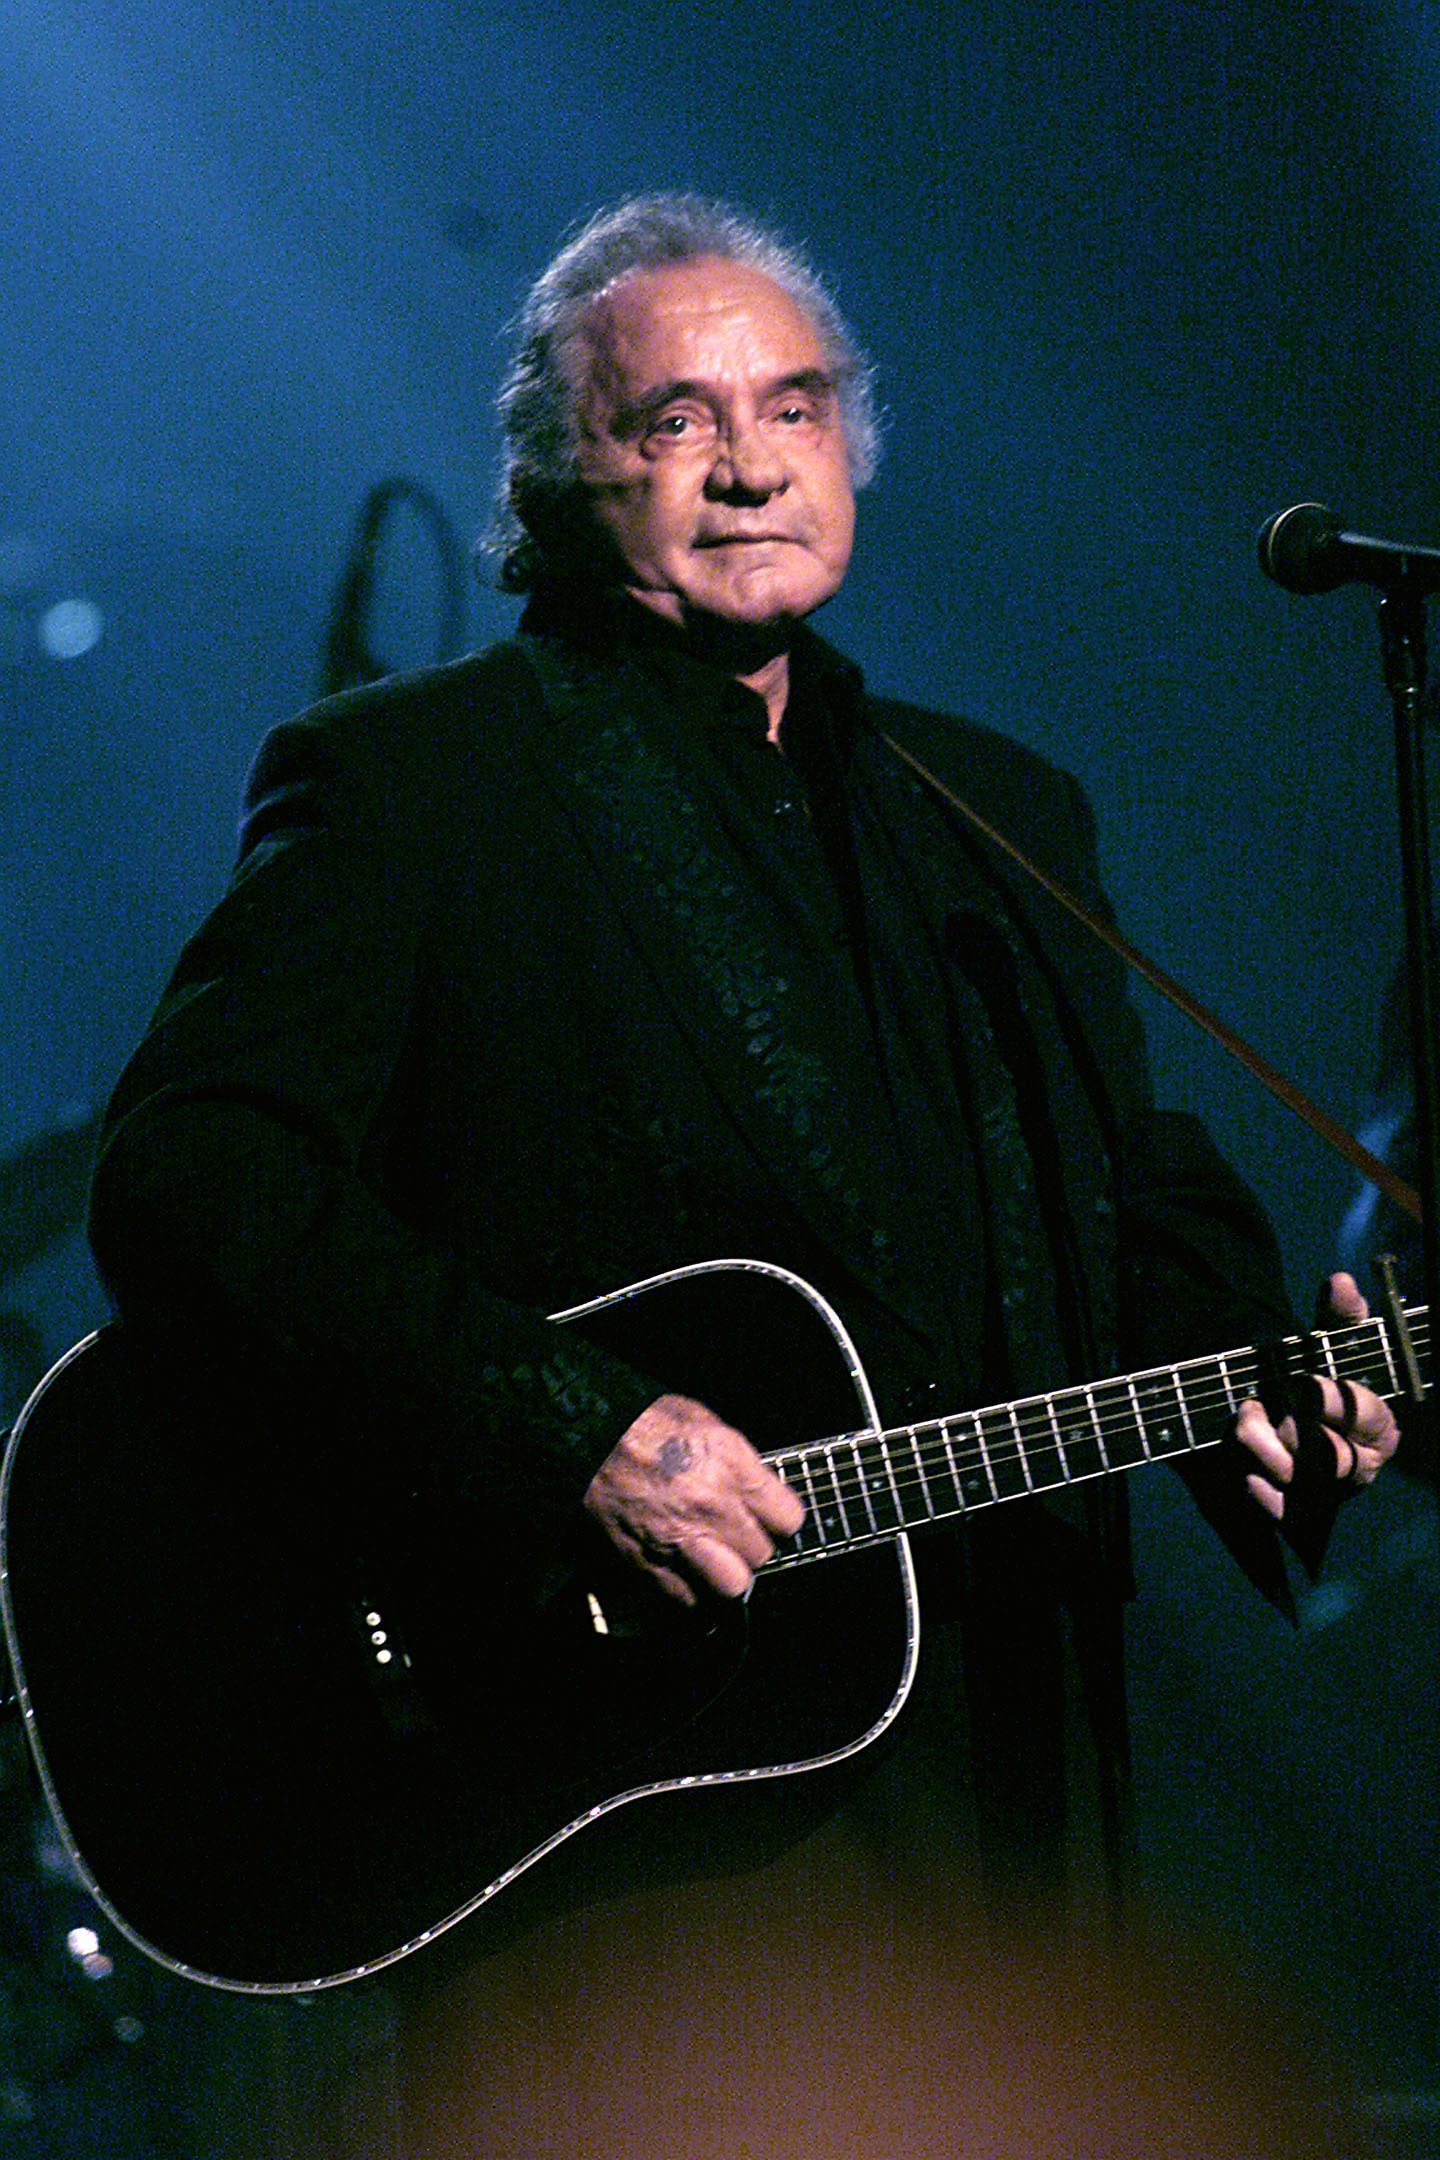 Johnny Cash at the Hammerstein Ballroom, April 18, 1999 | Photo: Getty Images